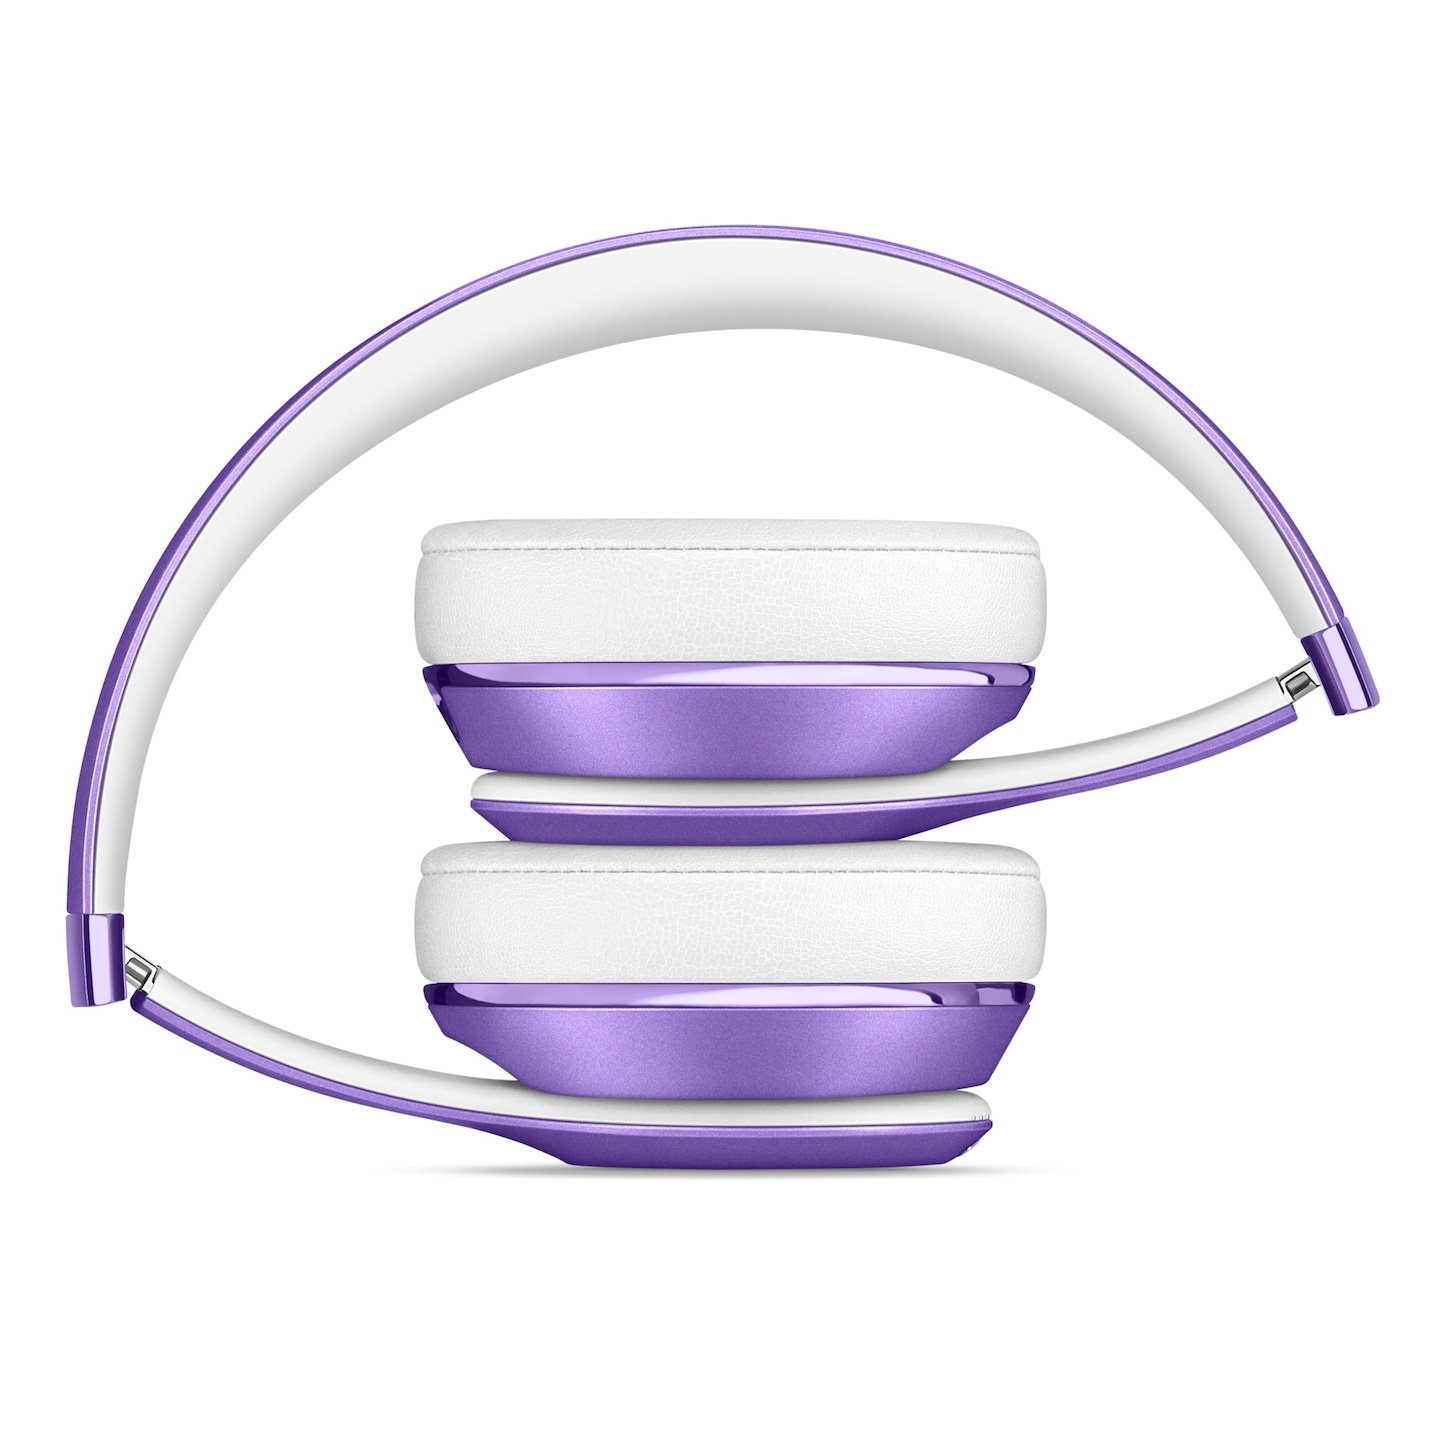 Beats-Solo3-Wireless-On-Ear-Headphones-Ultra-Violet-Collections-2.jpg